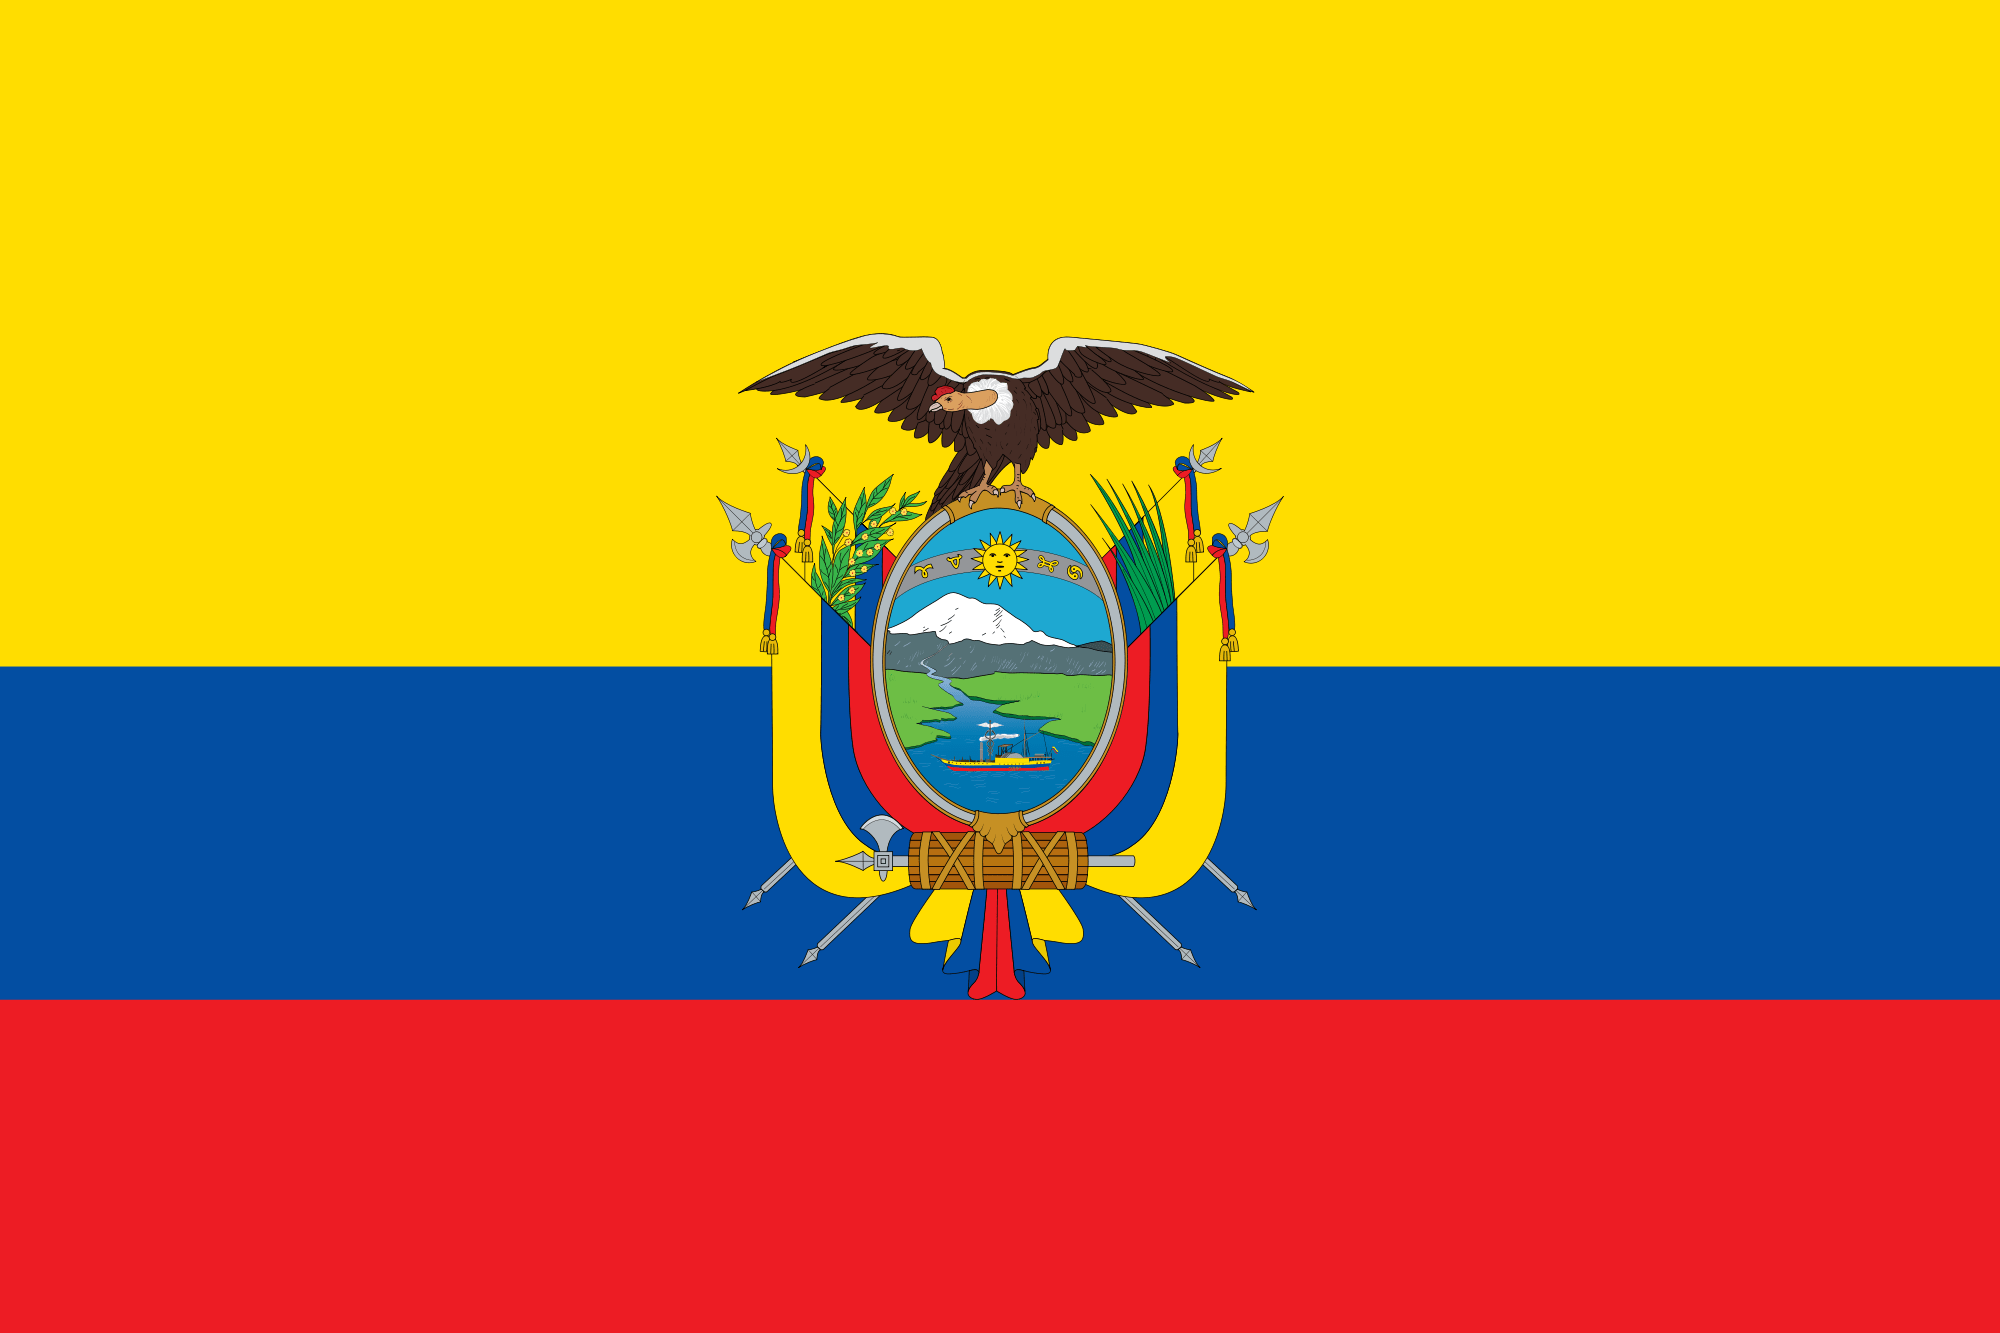 Flag of the Republic of Ecuador, used under GNU license from Wikimedia Commons